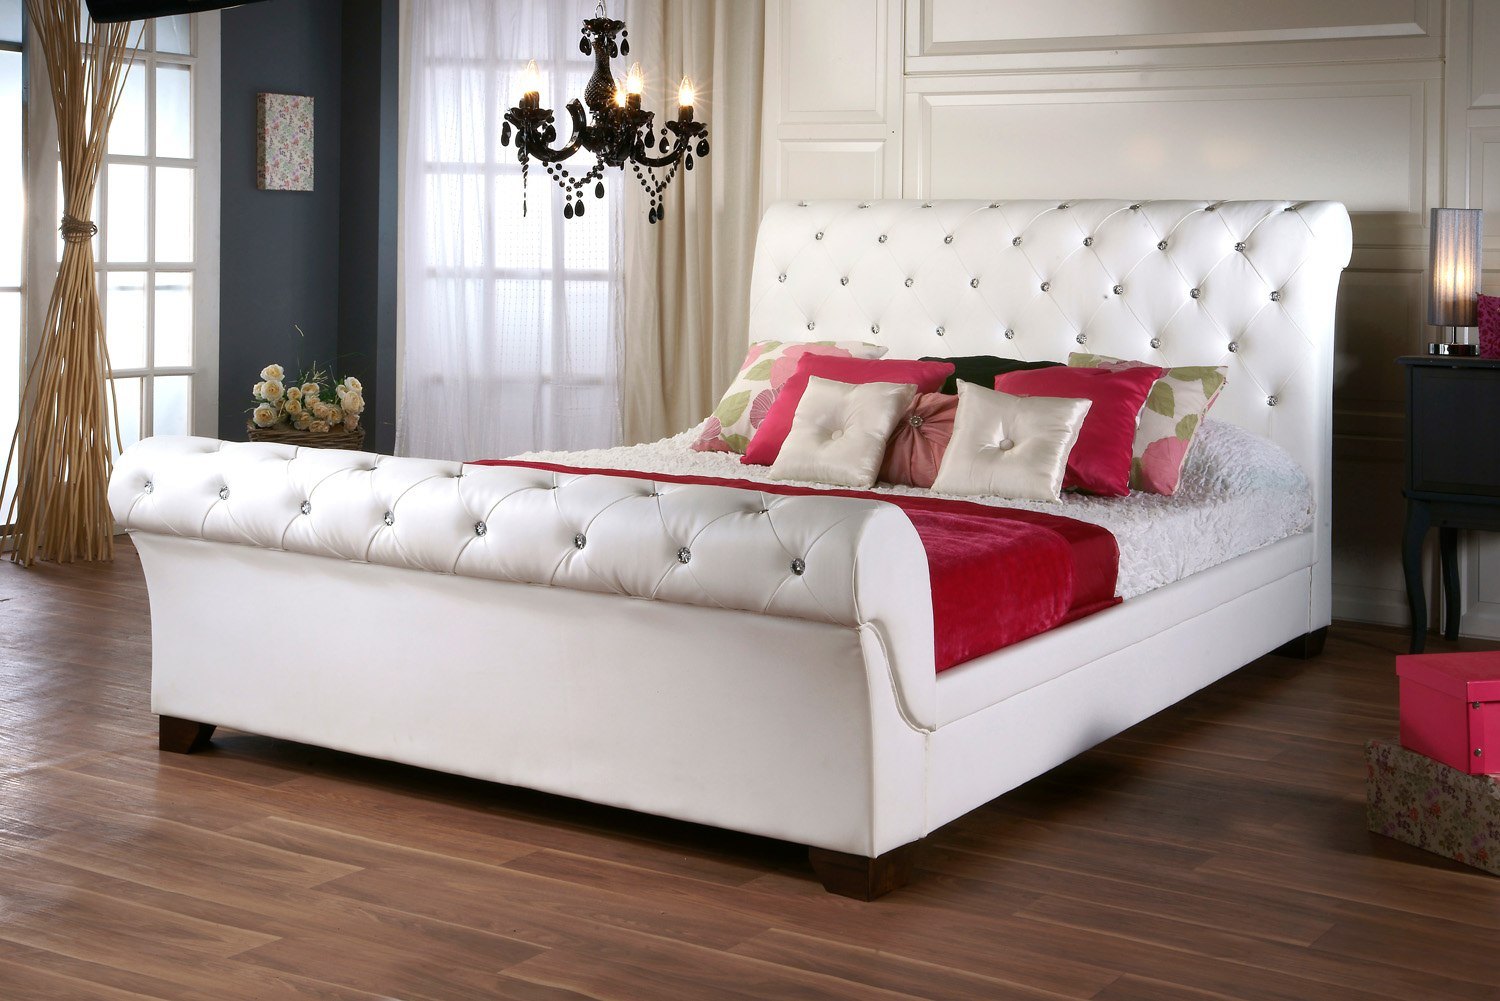 White Leather Bed Frame with Diamonds 1500 x 1001